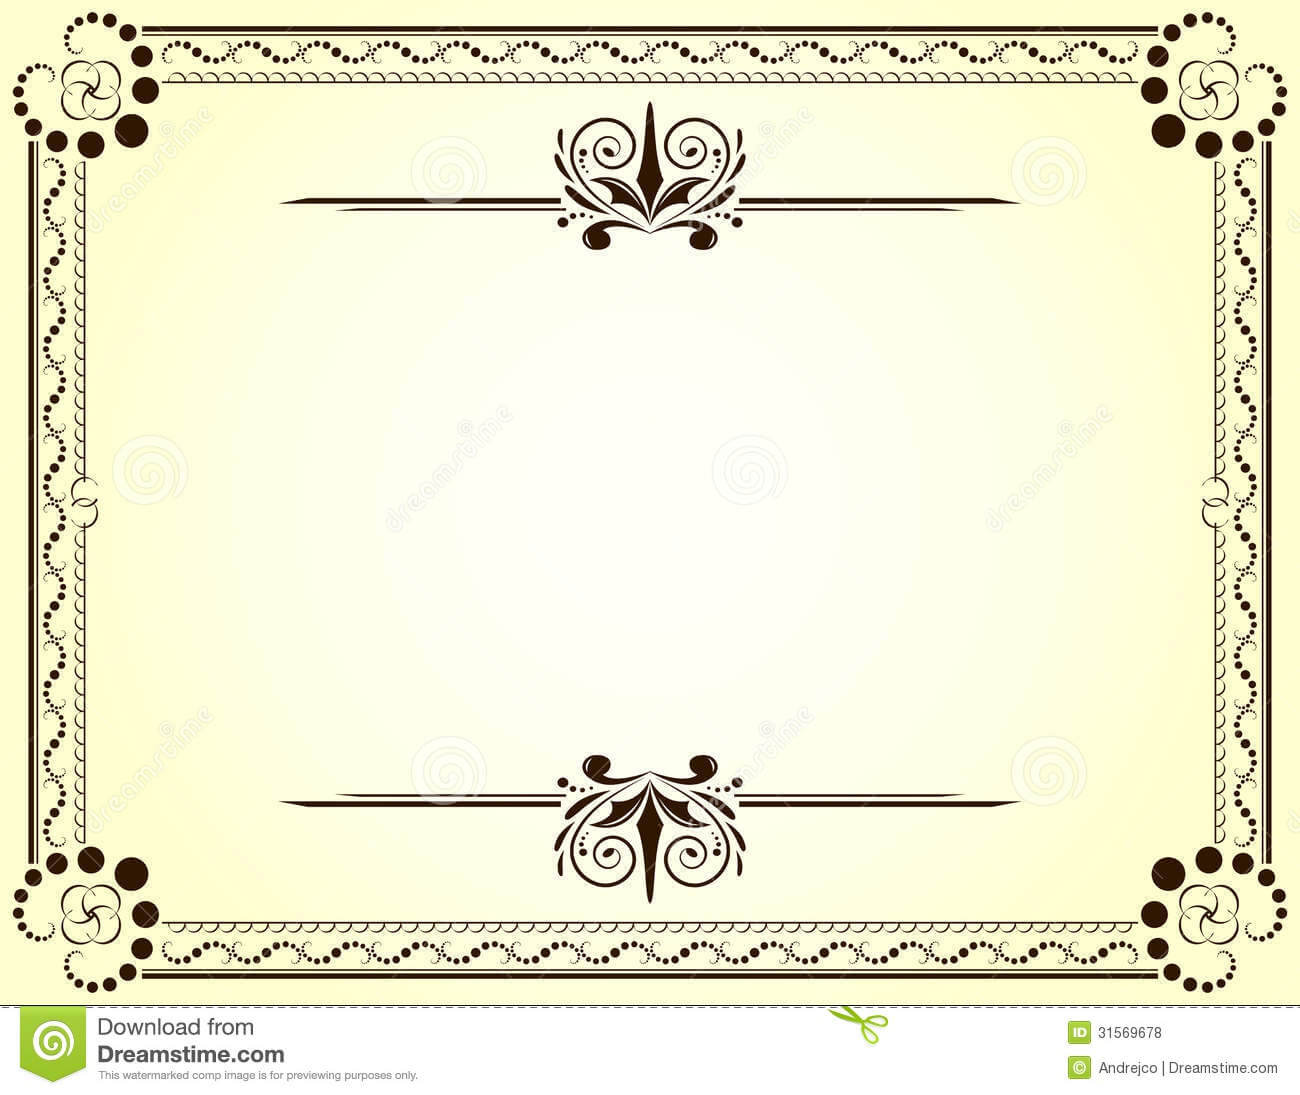 Certificate Stock Vector. Illustration Of Nobody, Frame pertaining to Blank Certificate Templates Free Download